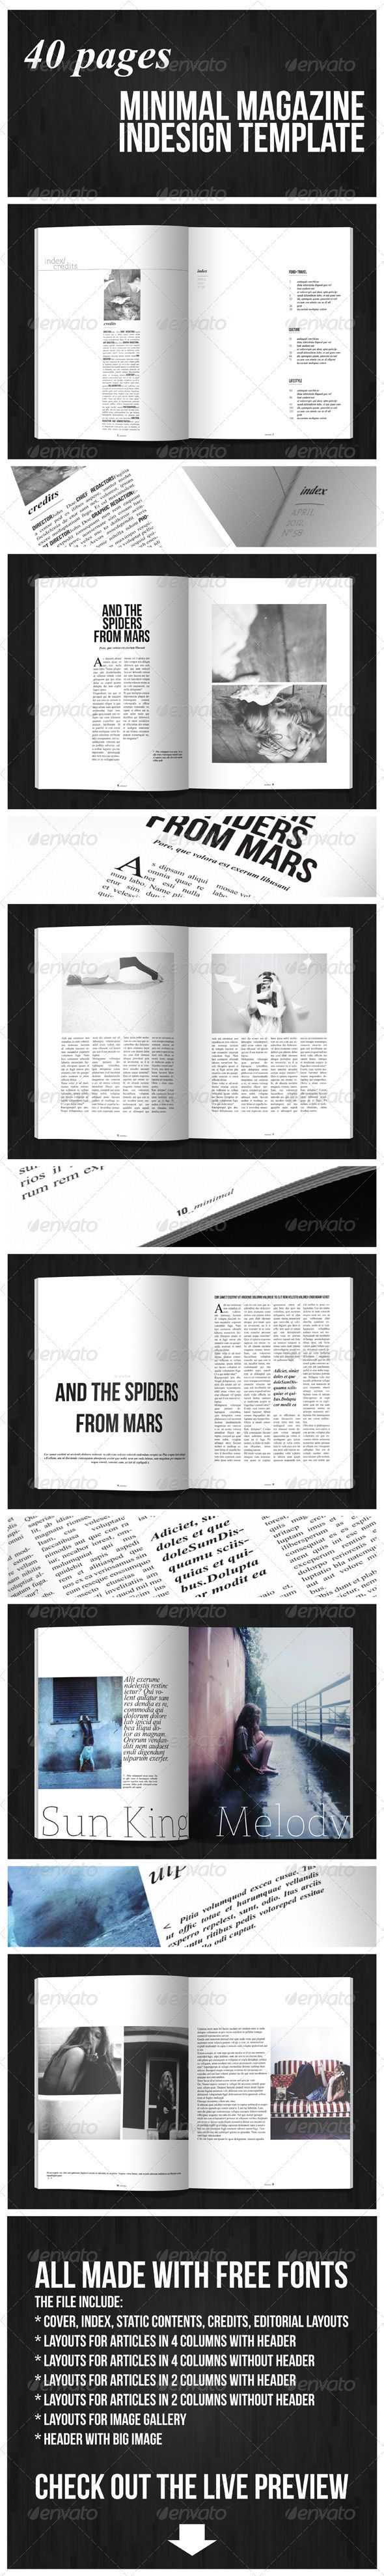 40 Pages Minimal Magazine - GraphicRiver Item for Sale